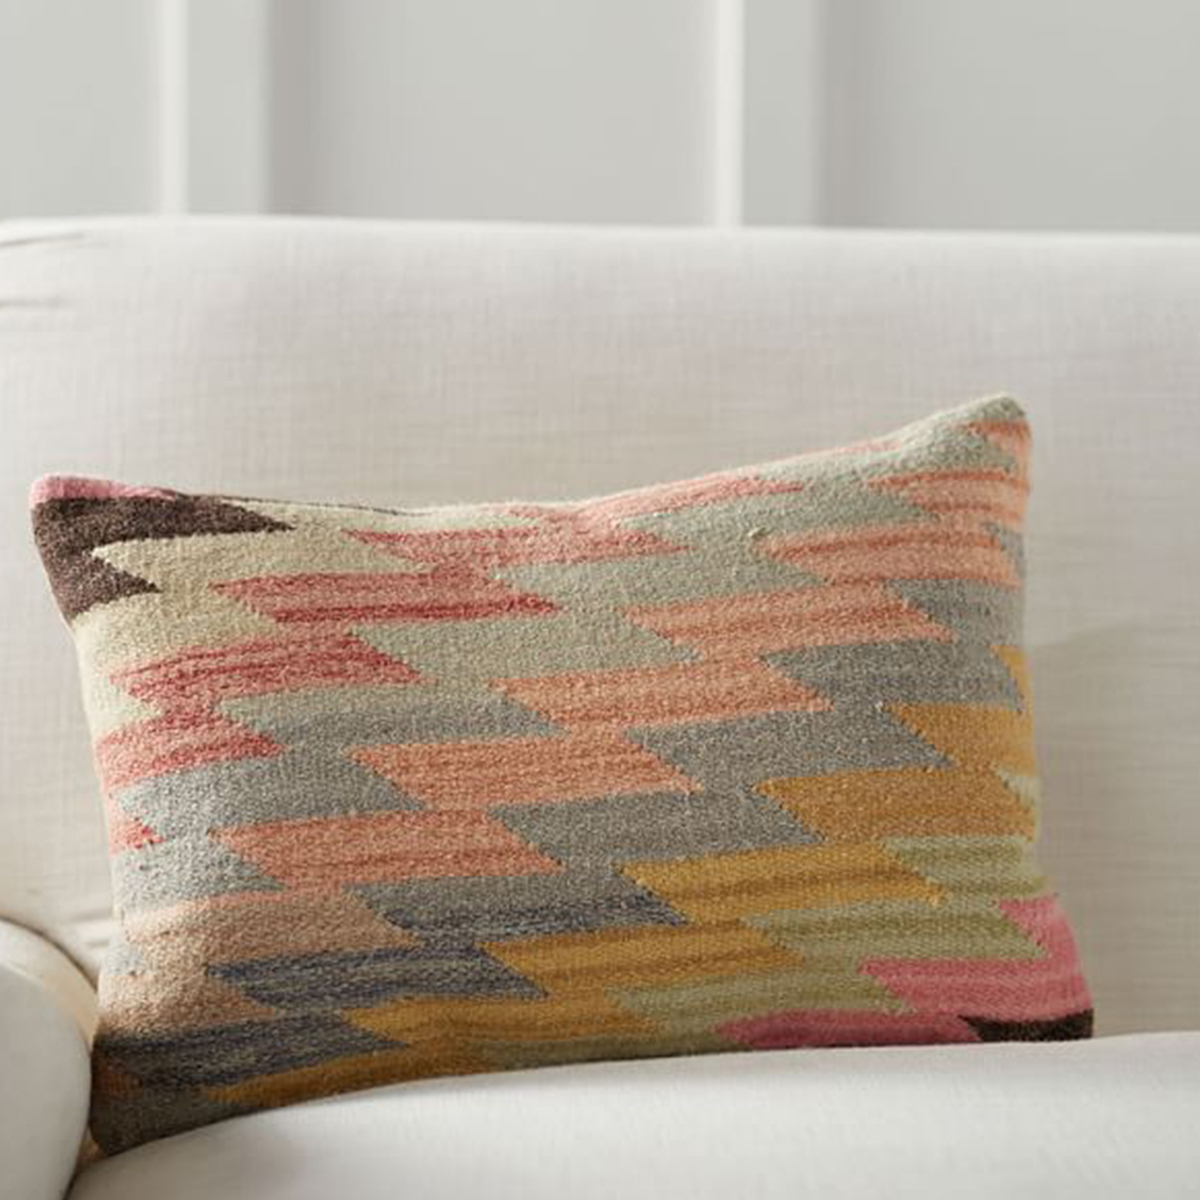 Southwest-inspired colorful handwoven pillow with a solid beige back. photo